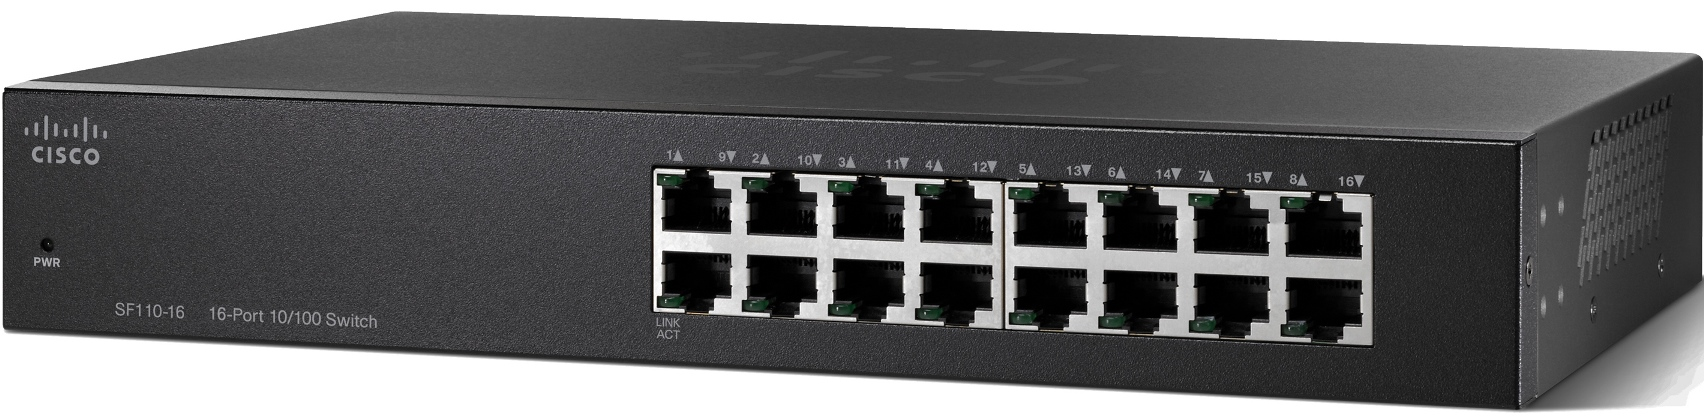 Cisco SF110-16 16-Port 10/100 Switch